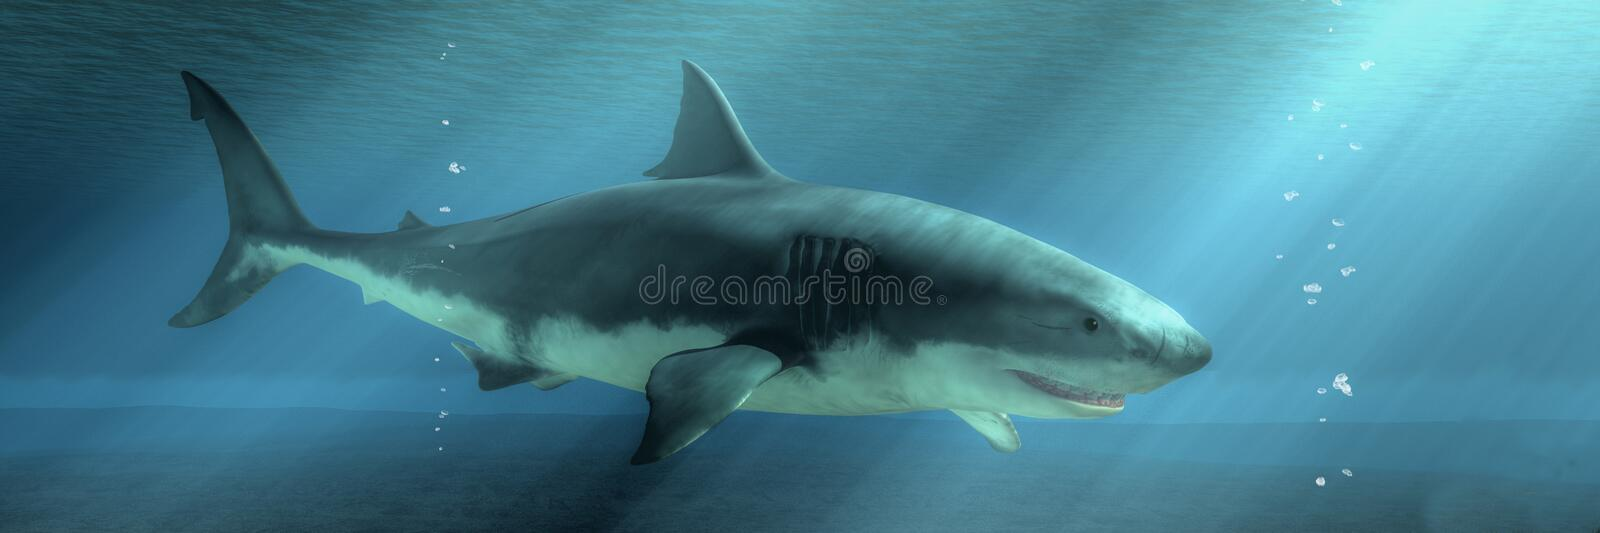 Great White Shark on the Prowl royalty free illustration